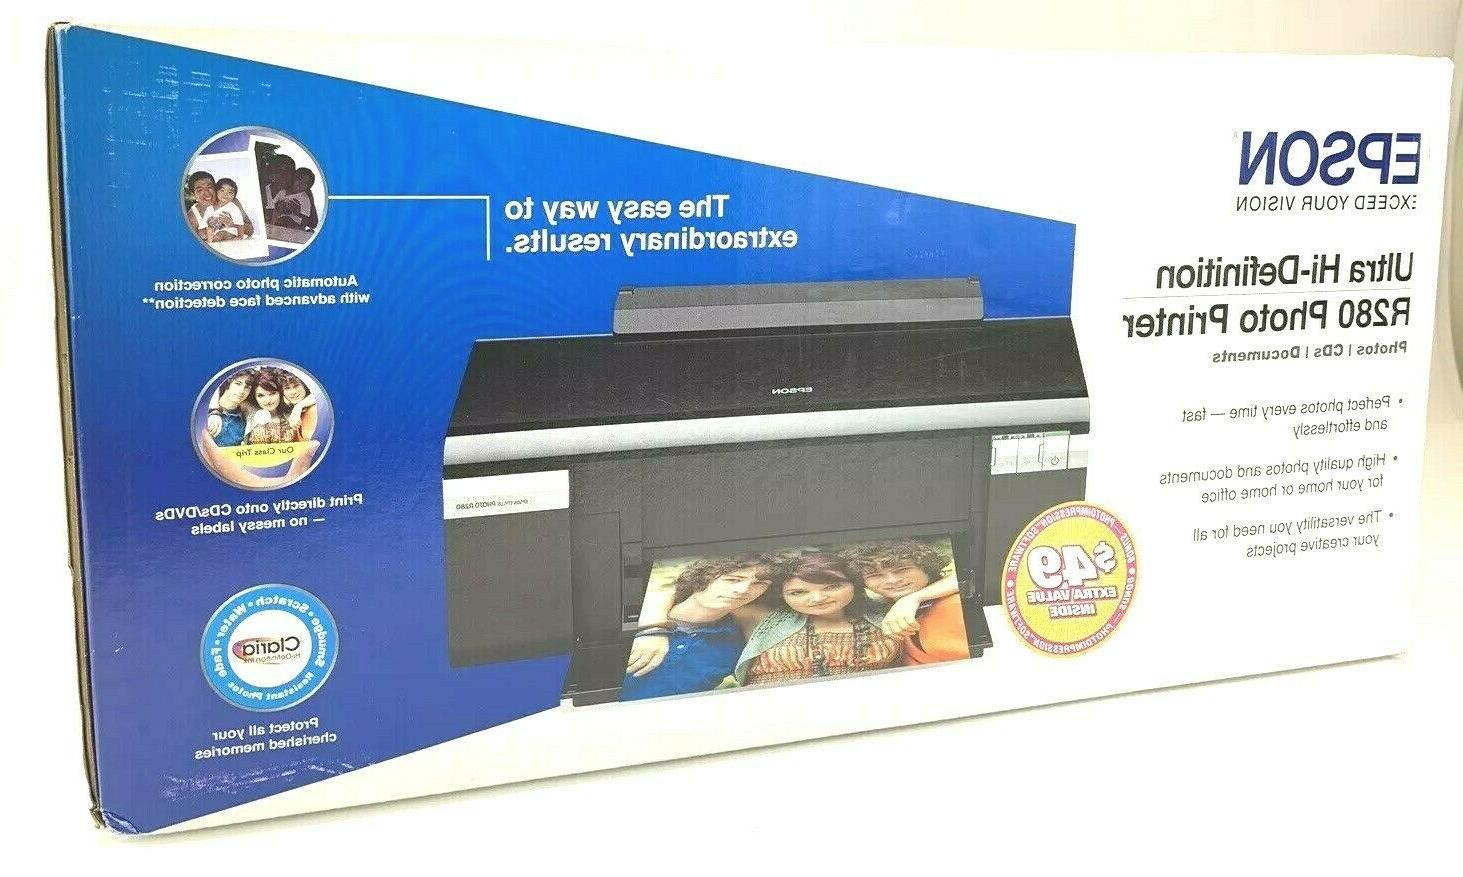 Epson ULTRA HI-DEFINITION Photo Factory